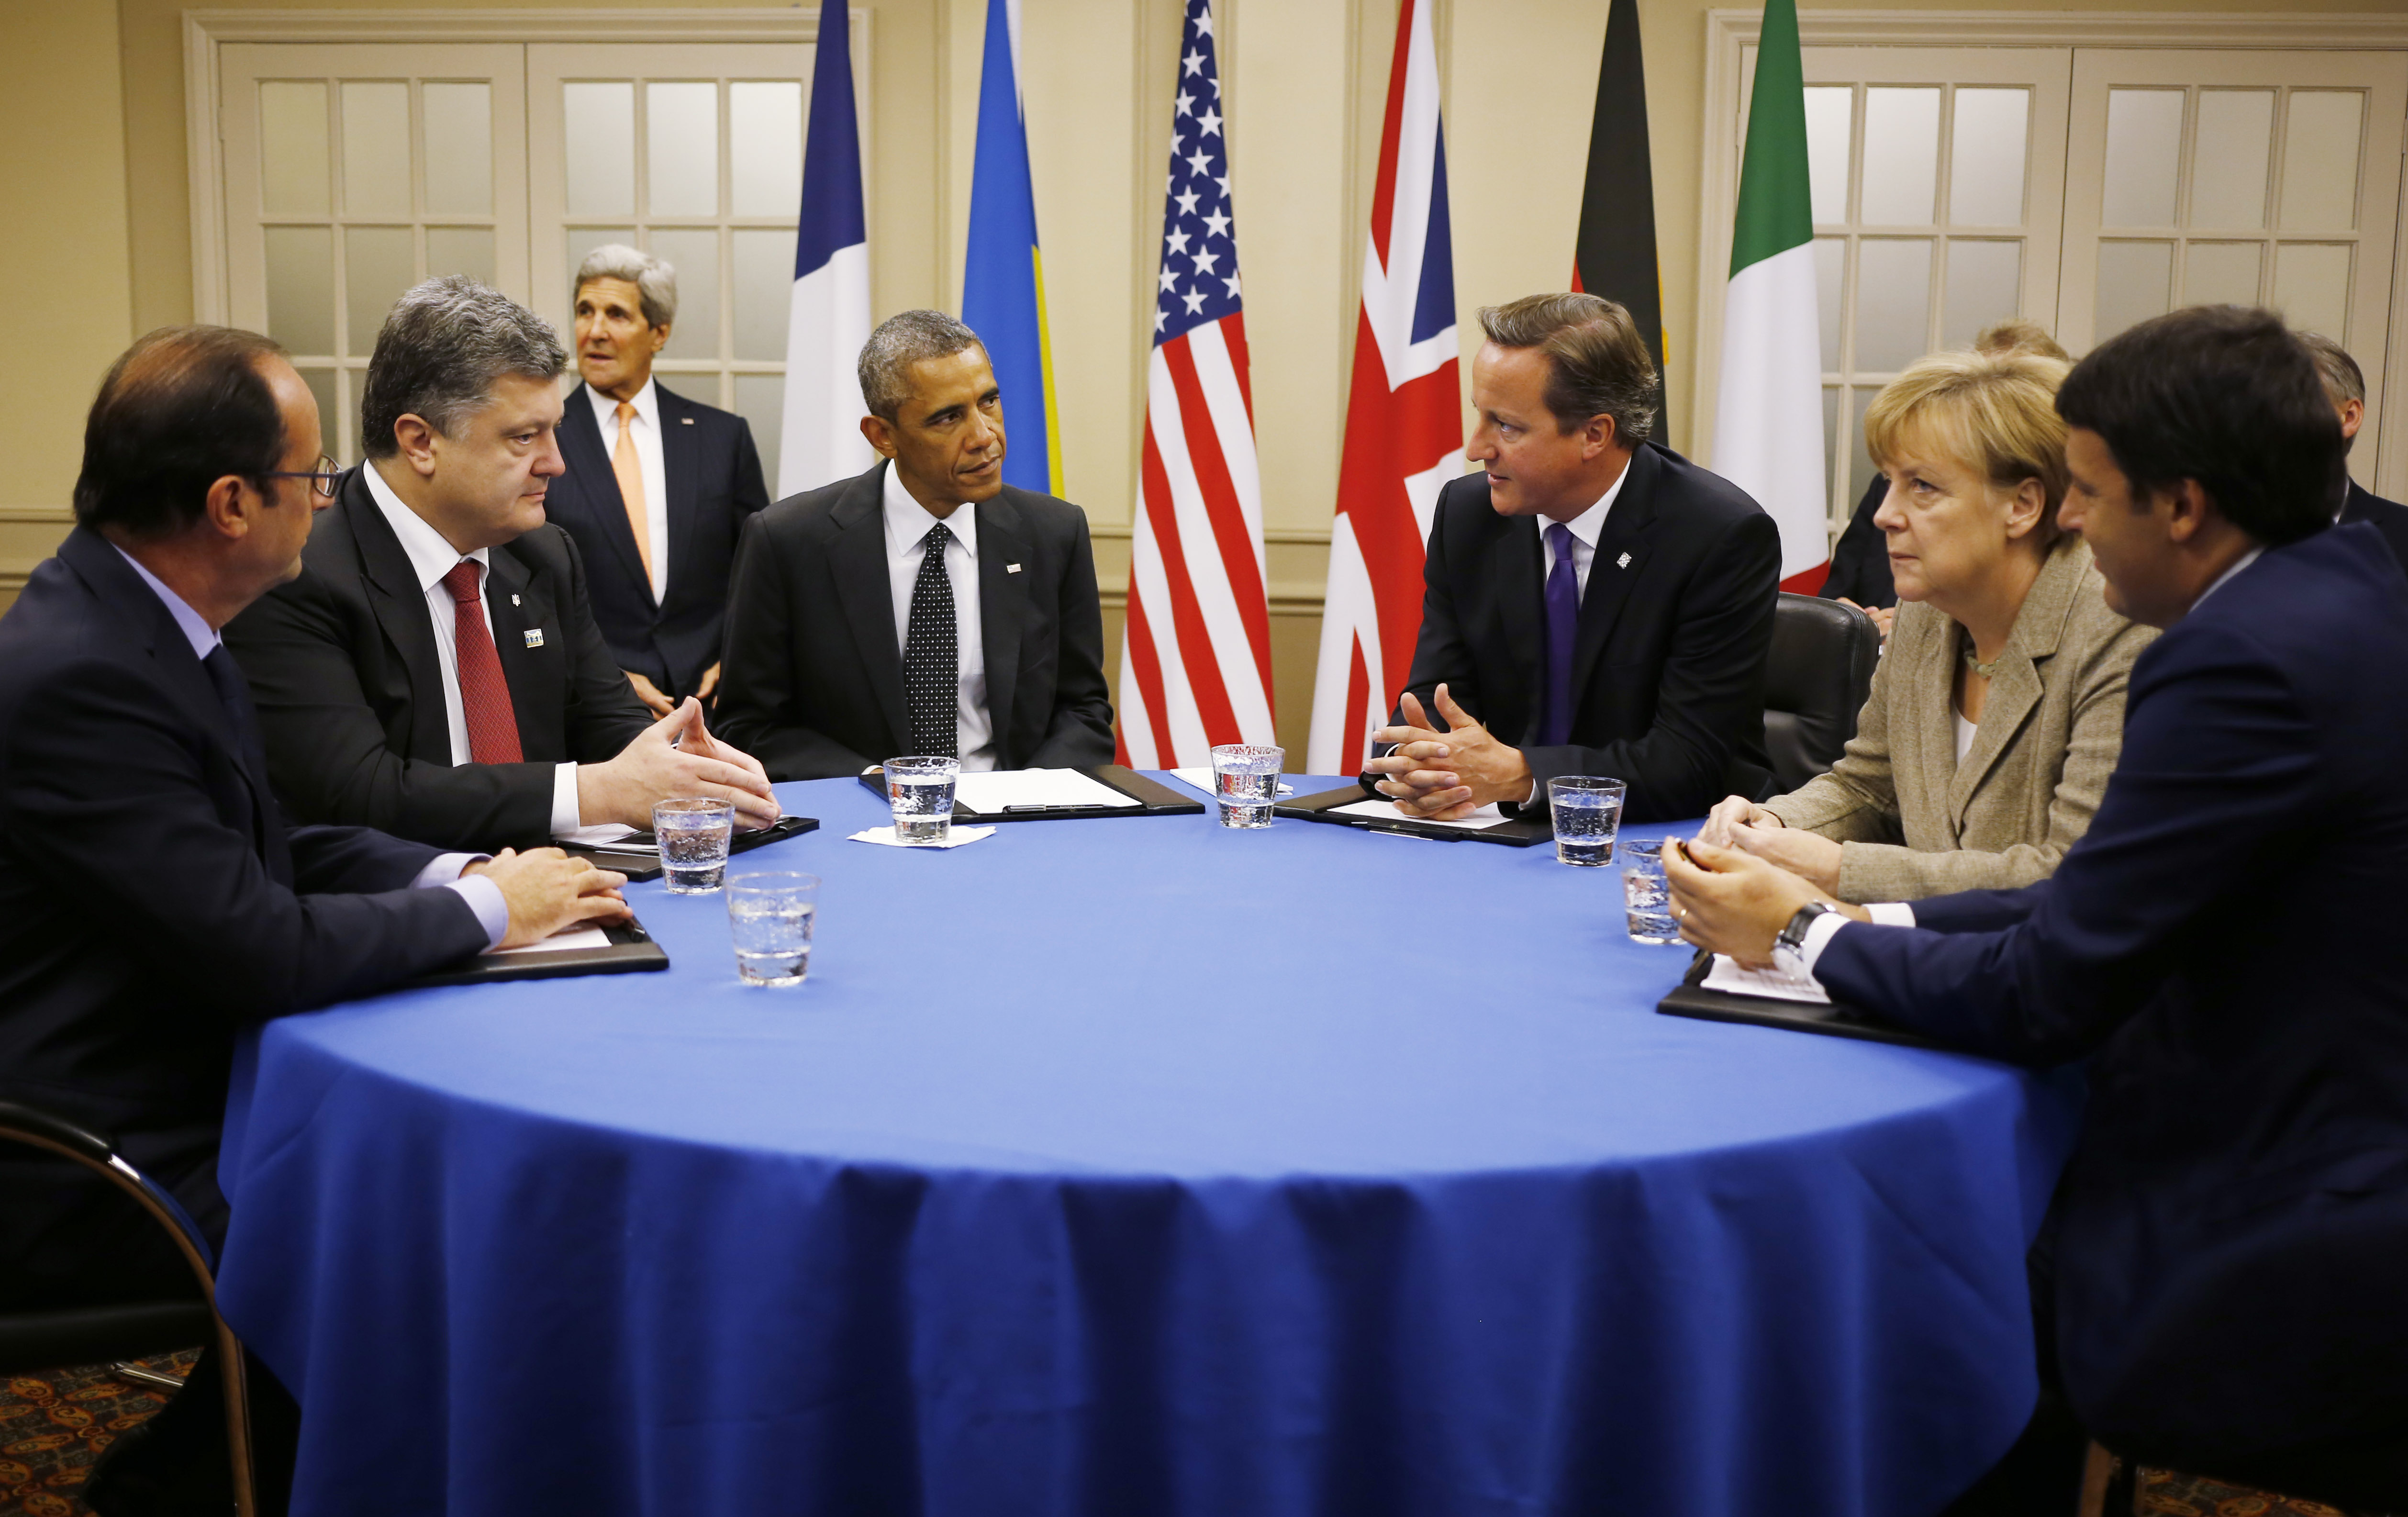 President Barack Obama is seated at a table with, from left to right: France's President Francois Hollande; Ukraine President Petro Poroshenko; British Prime Minister David Cameron; German Chancellor Angela Merkel; and Italian Prime Minister Matteo Renzi as they meet about Ukraine at the NATO summit at Celtic Manor in Newport, Wales on Sept. 4, 2014.